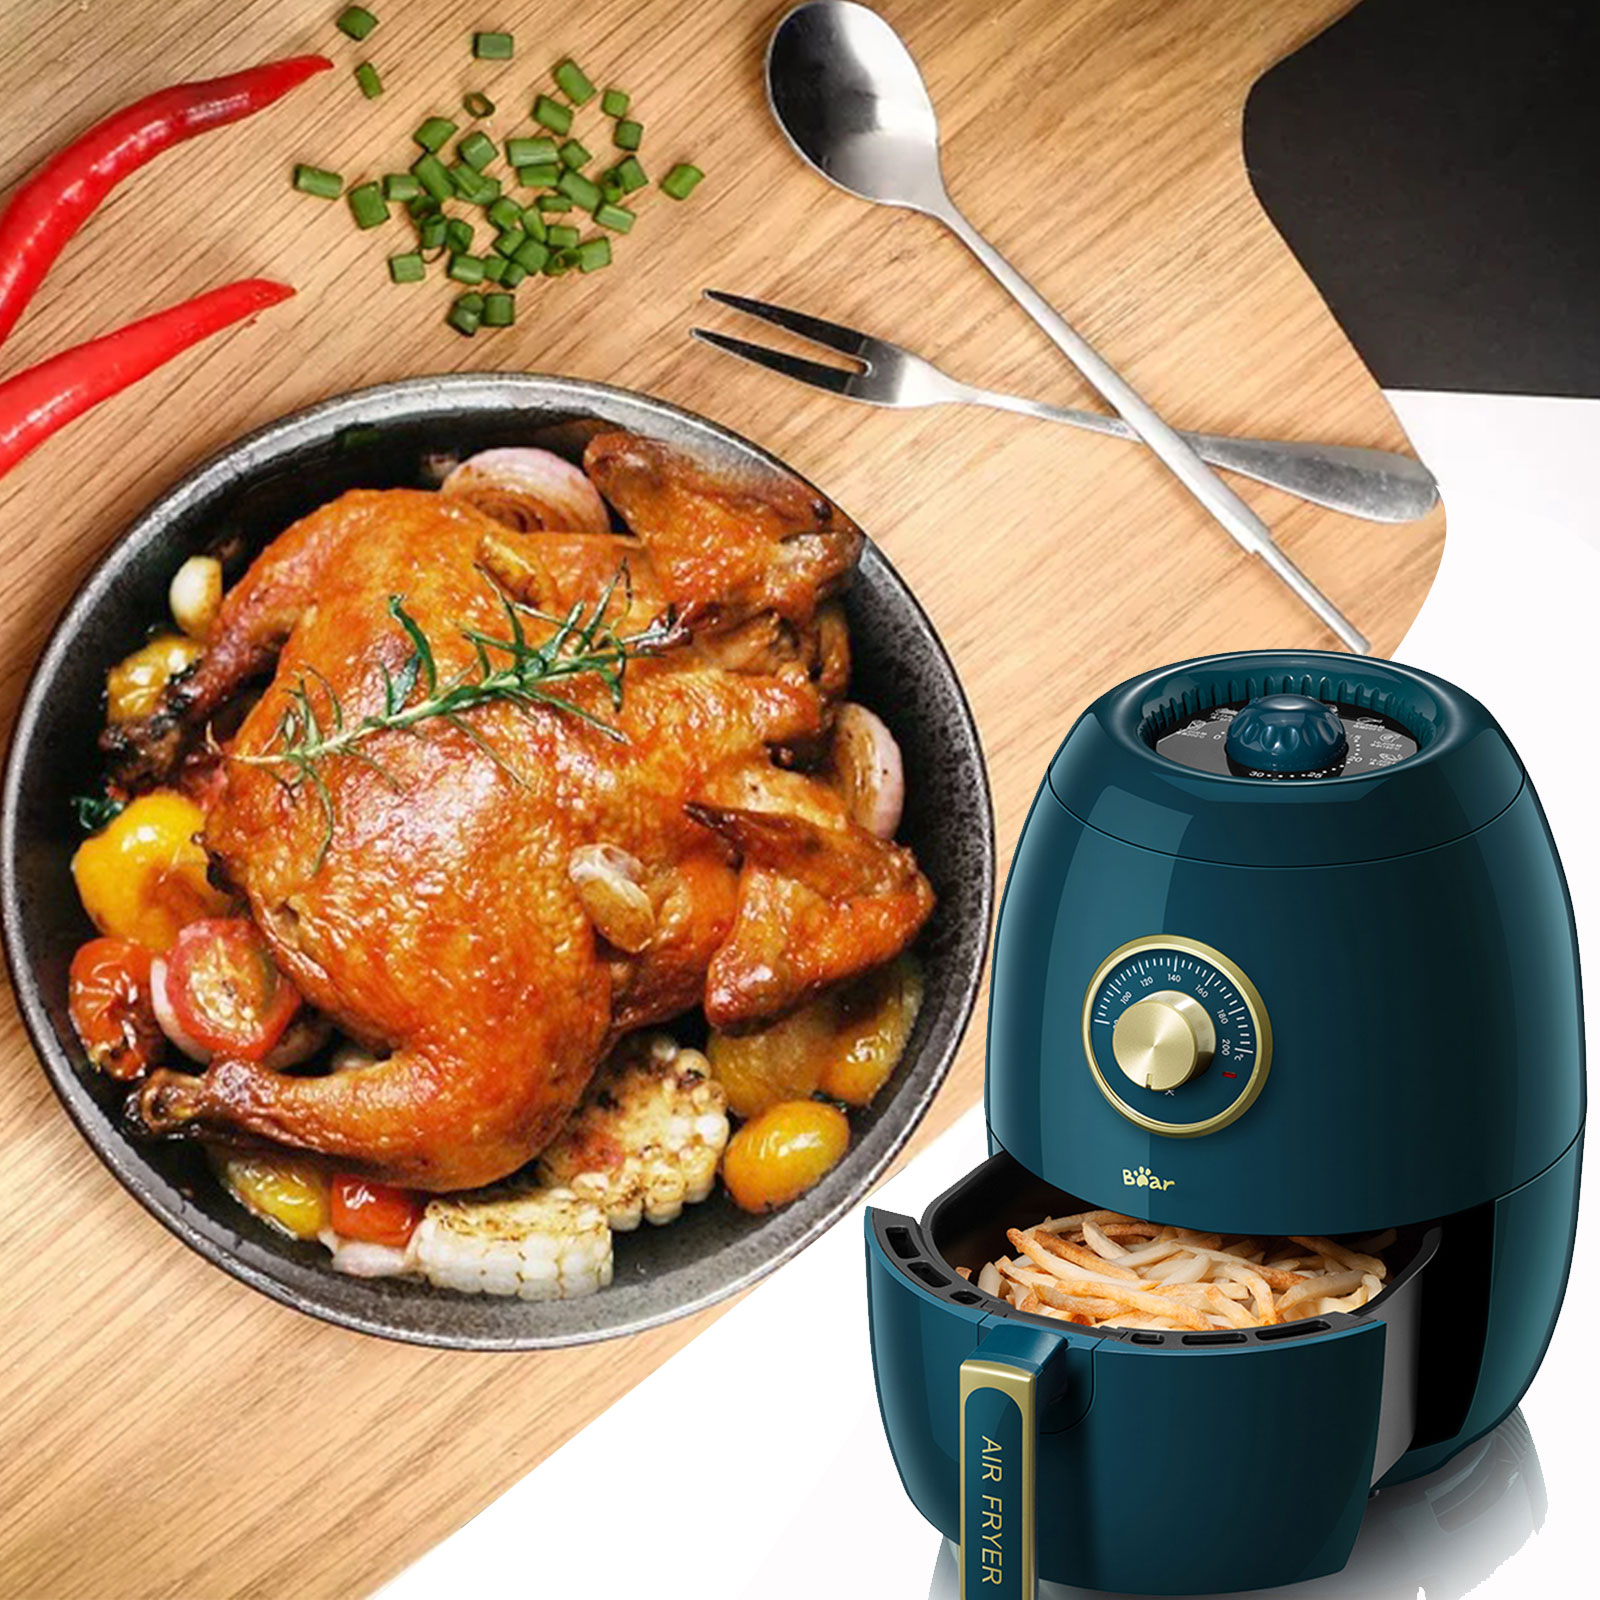 Bear 1350W 3L Electric Air Fryer Oven Intelligent Deep Airfryer without Oil Home Healthy Air Fryer 360° Baking Cooker